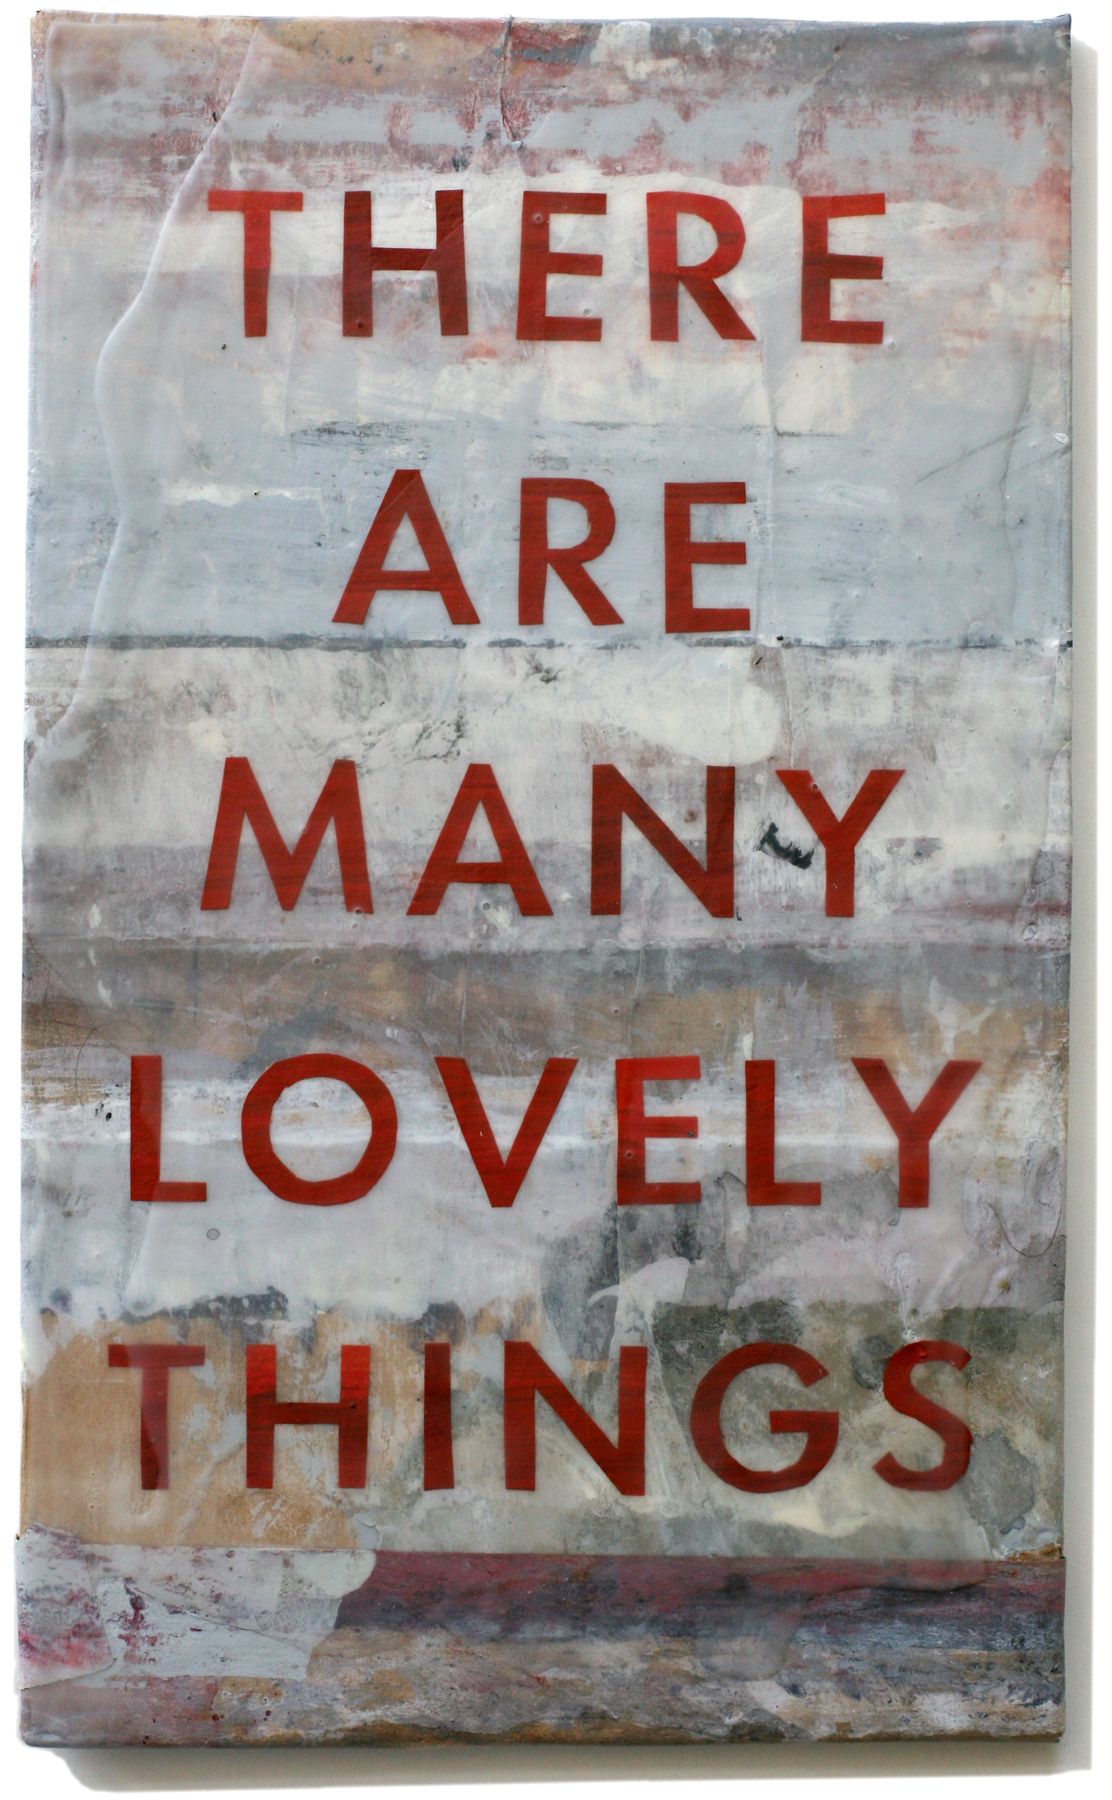 """Lovely Things 32, 10"""" x 6"""", 2008-2010 (private collection)"""